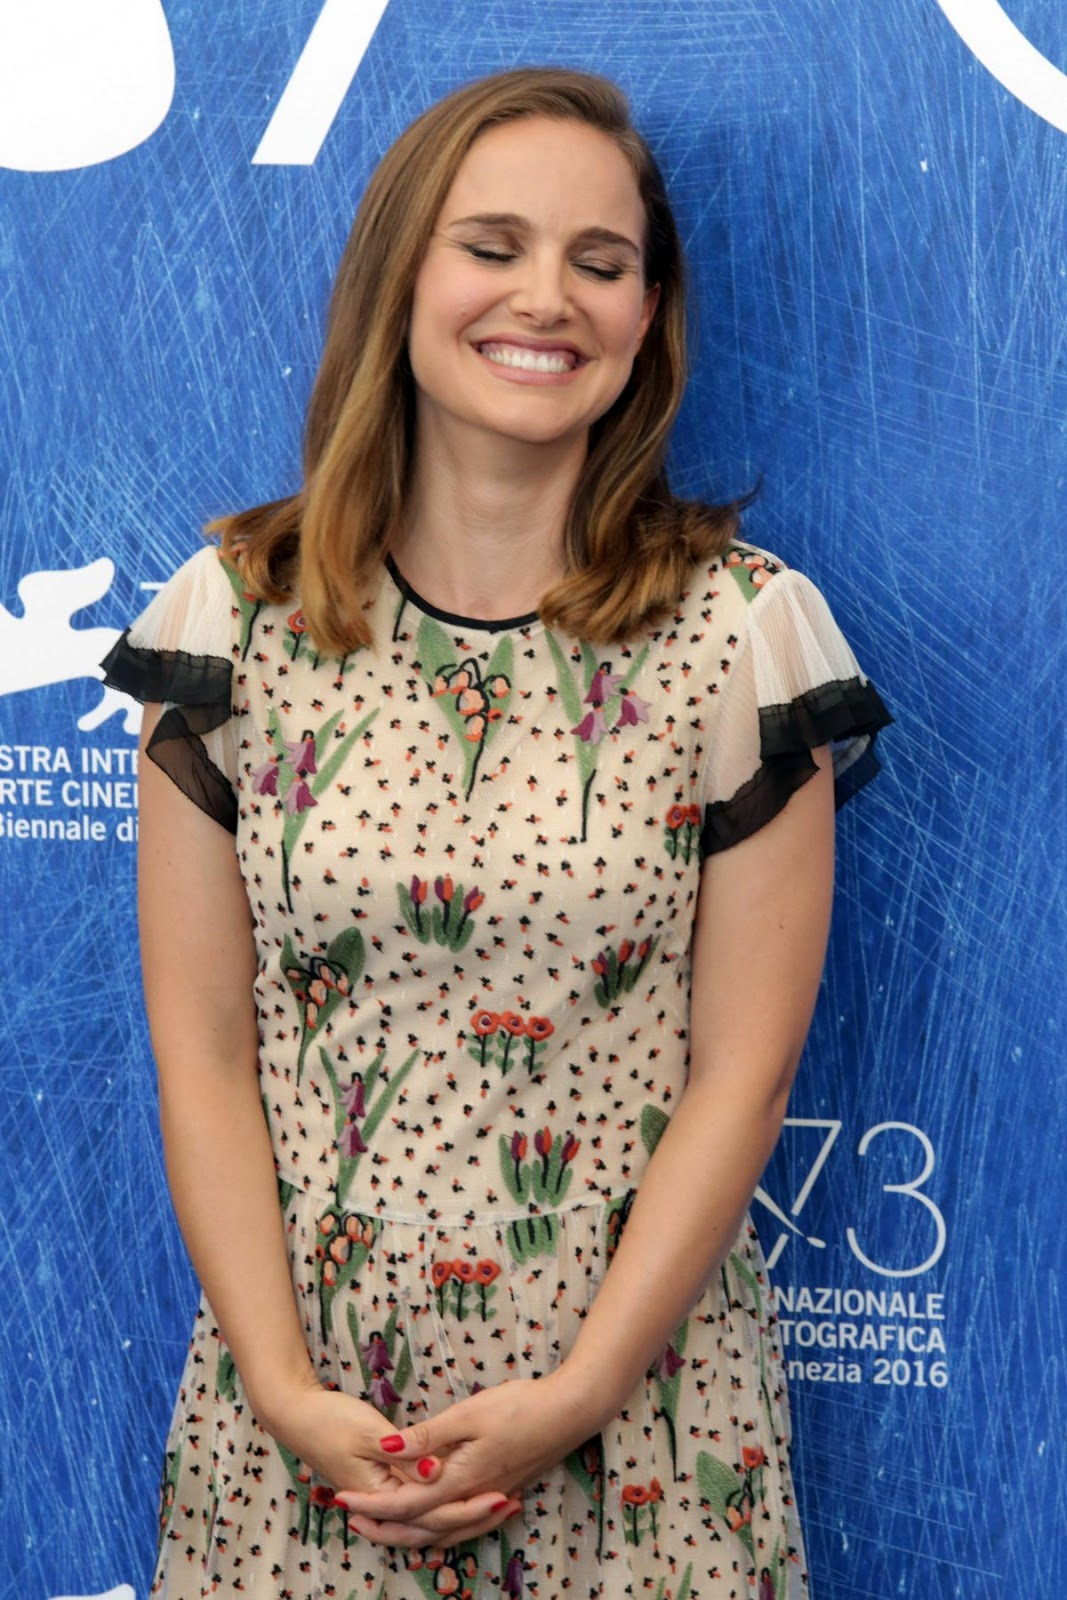 HQ Photos of Natalie Portman At Jackie Photocall At 73rd Venice Film Festival